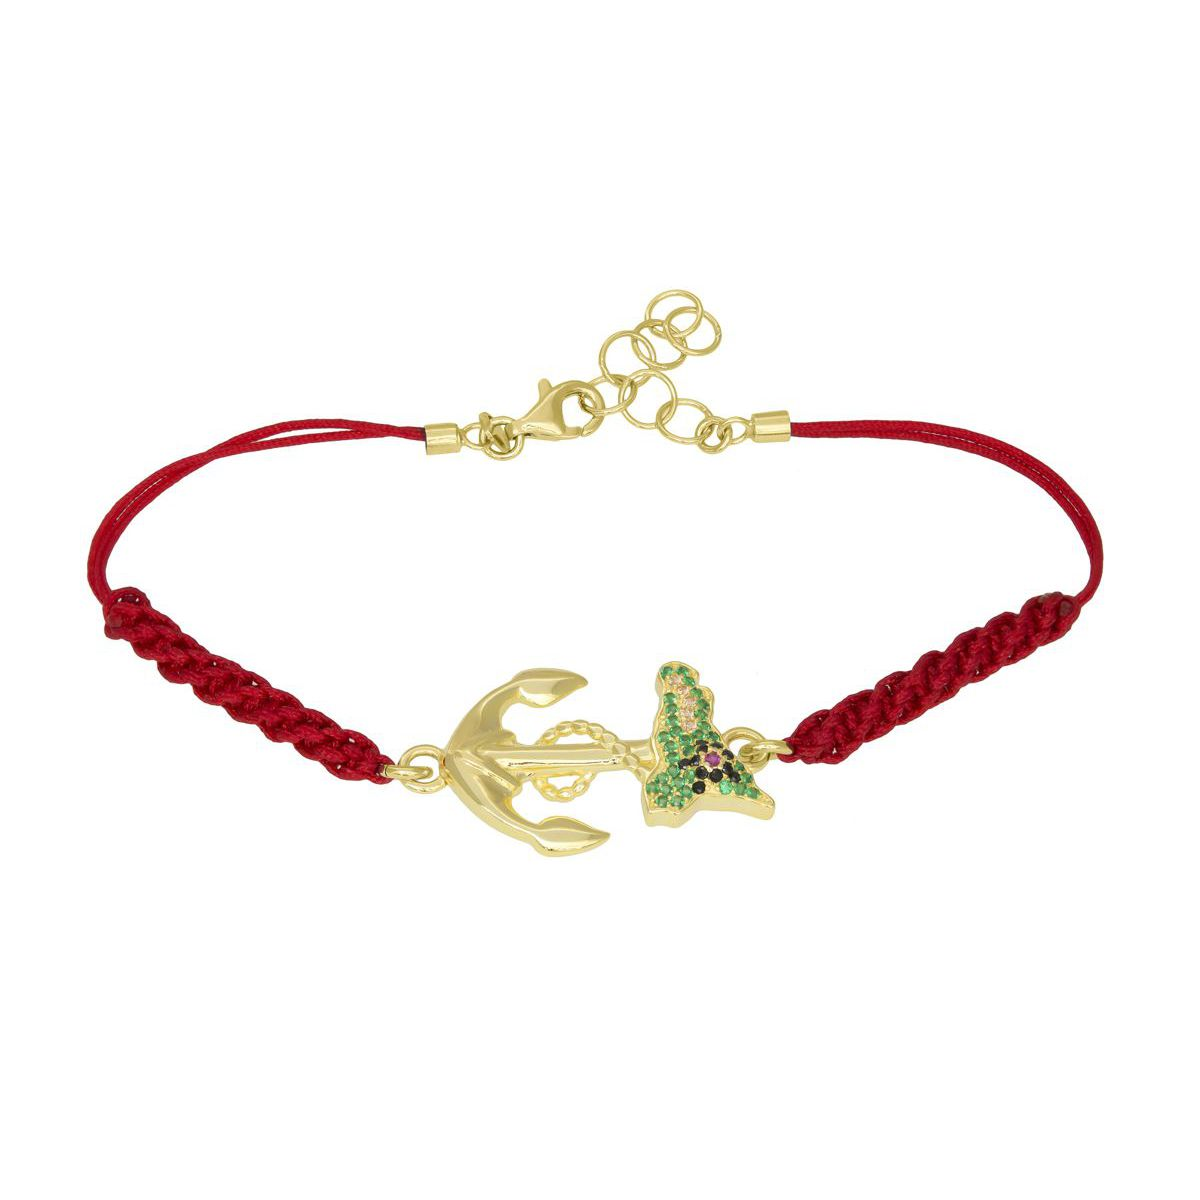 ANCHOR AND SICILY MACRAME BRACELET Red M'AMI SICILY JEWELS